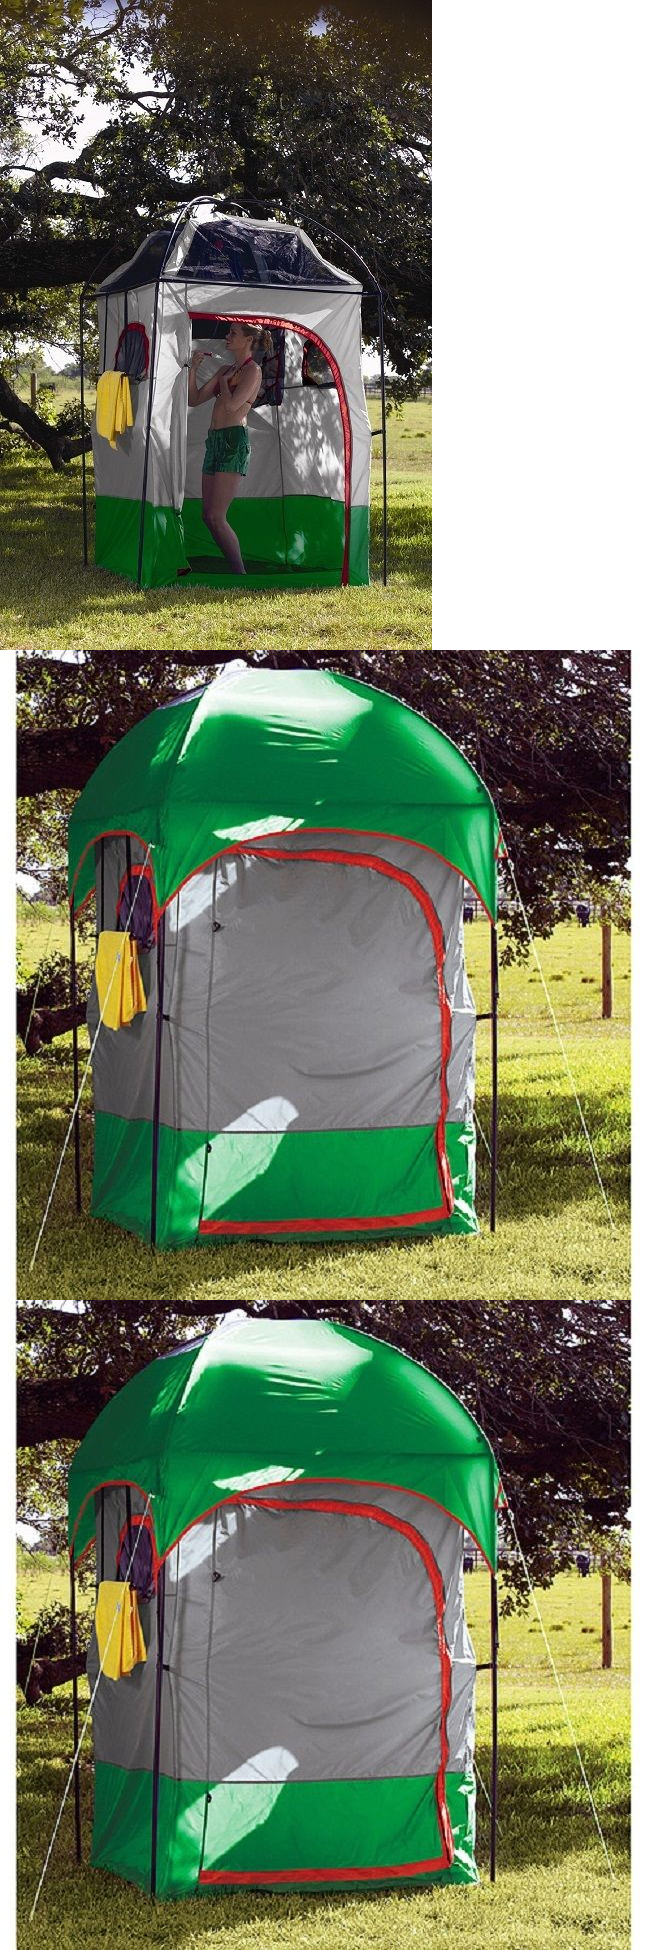 Portable privacy curtains - Portable Showers And Accessories 181396 Portable Shower Camping Camp Solar Curtain Privacy Shelter Tent Outdoor